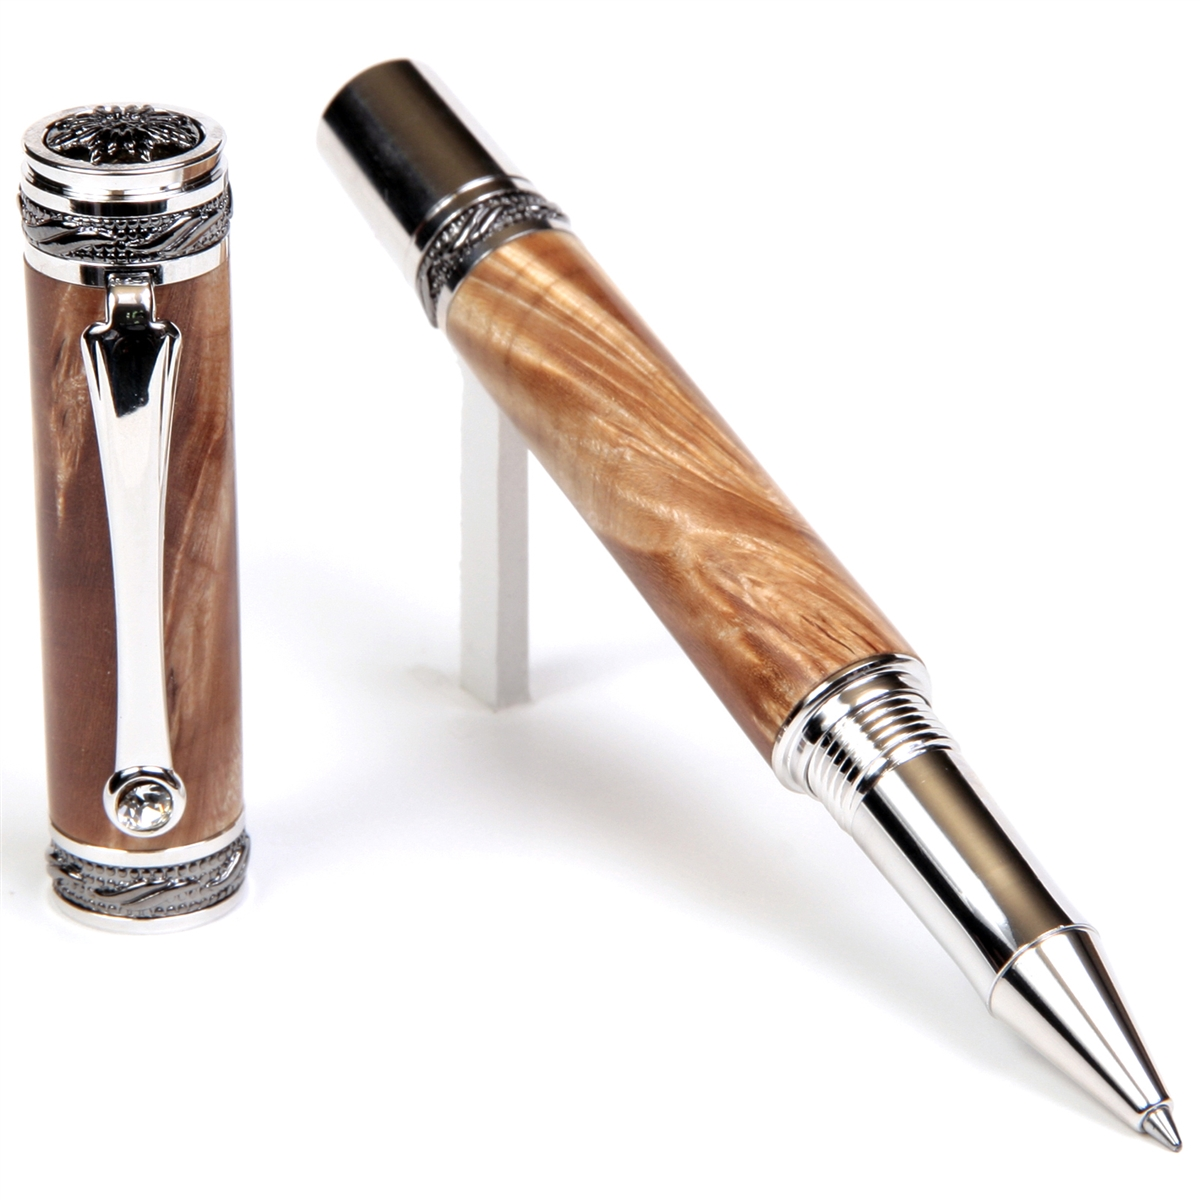 Majestic Rollerball Pen - Maple Burl